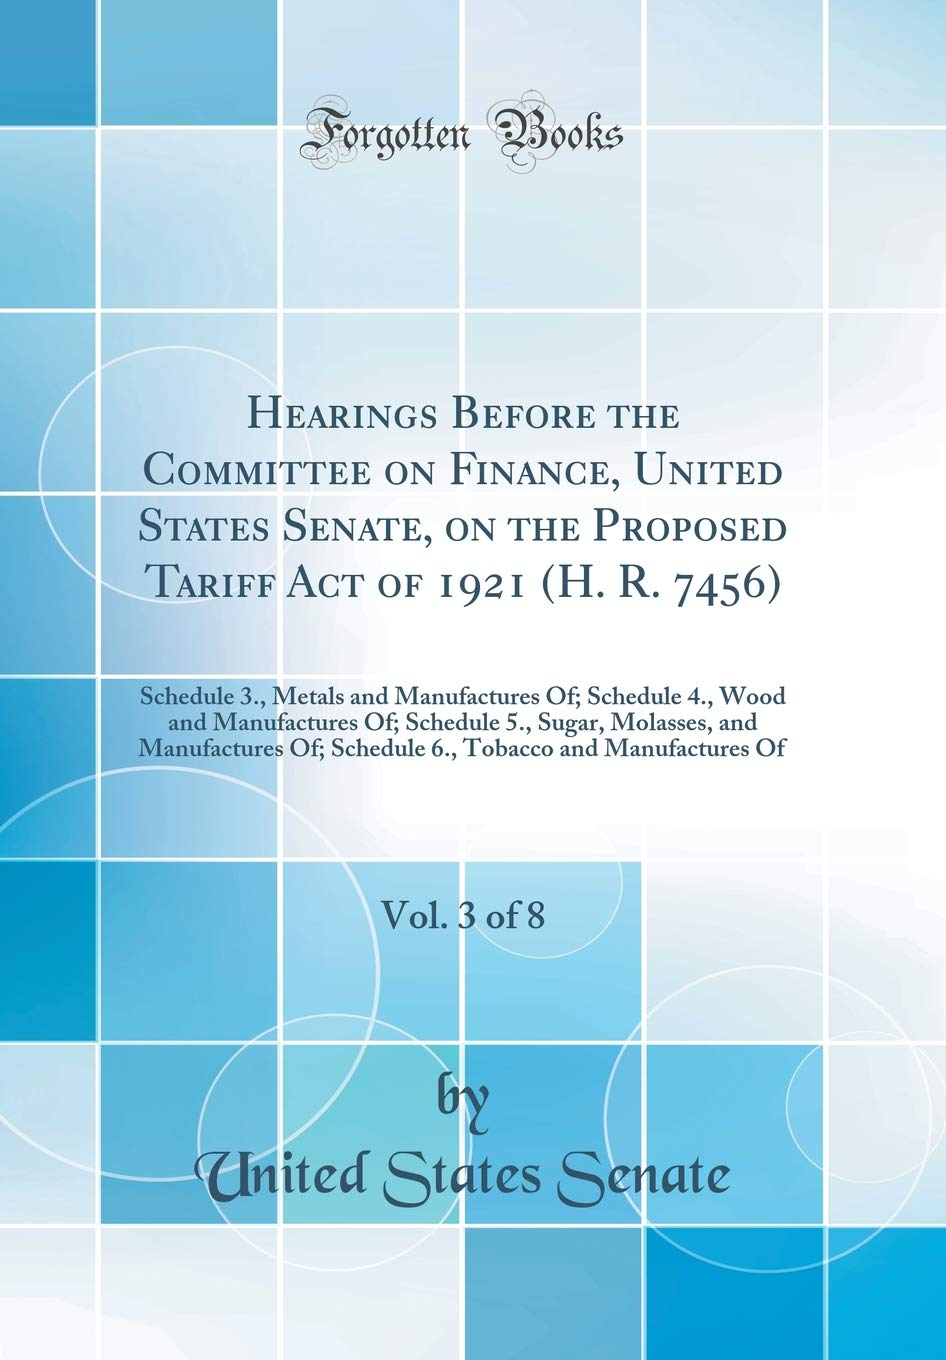 Download Hearings Before the Committee on Finance, United States Senate, on the Proposed Tariff Act of 1921 (H. R. 7456), Vol. 3 of 8: Schedule 3., Metals and ... 5., Sugar, Molasses, and Manufactures of ebook